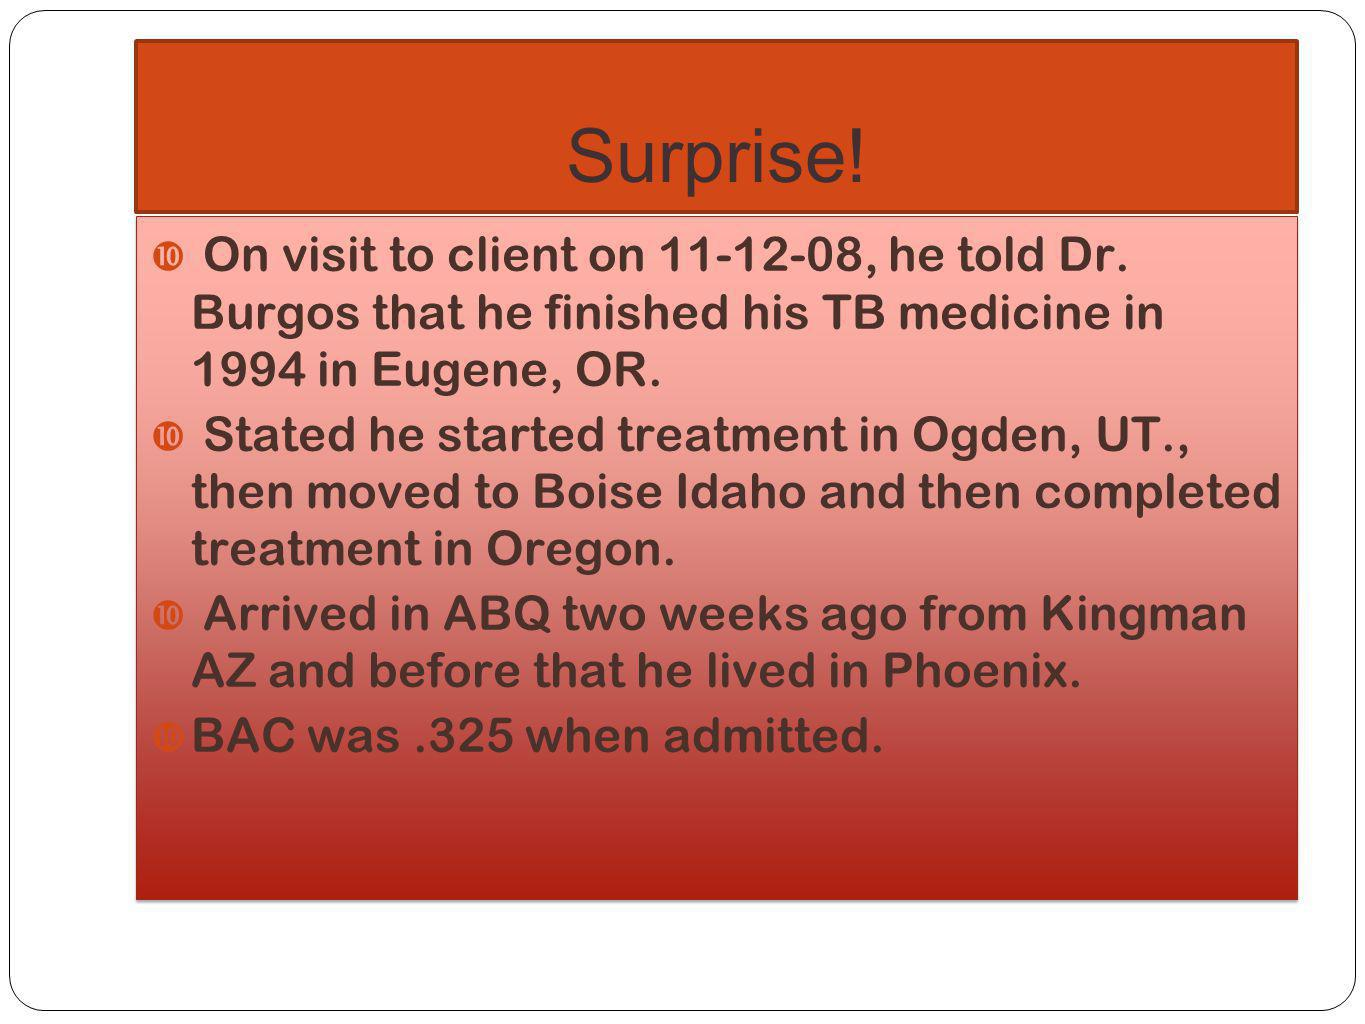 Surprise! On visit to client on 11-12-08, he told Dr. Burgos that he finished his TB medicine in 1994 in Eugene, OR.